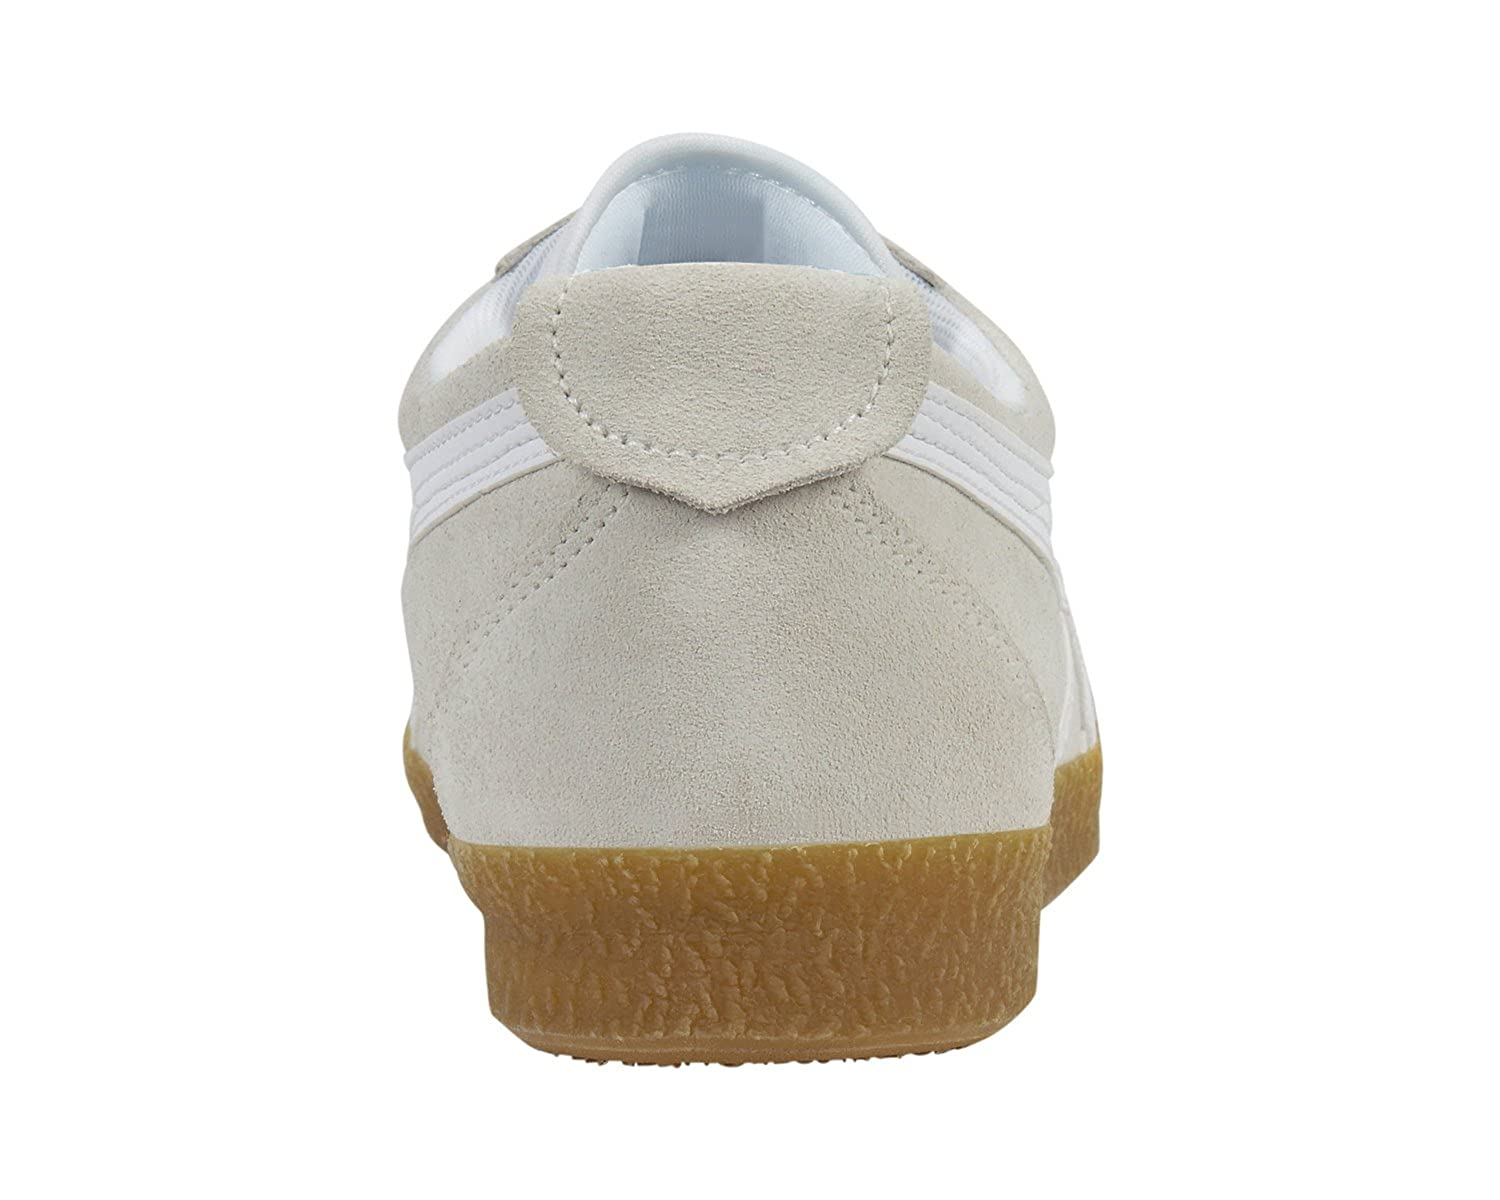 8b7c56c610a5 Onitsuka Tiger Adults  Mexico Delegation Low-Top Sneakers  Amazon.co.uk   Shoes   Bags